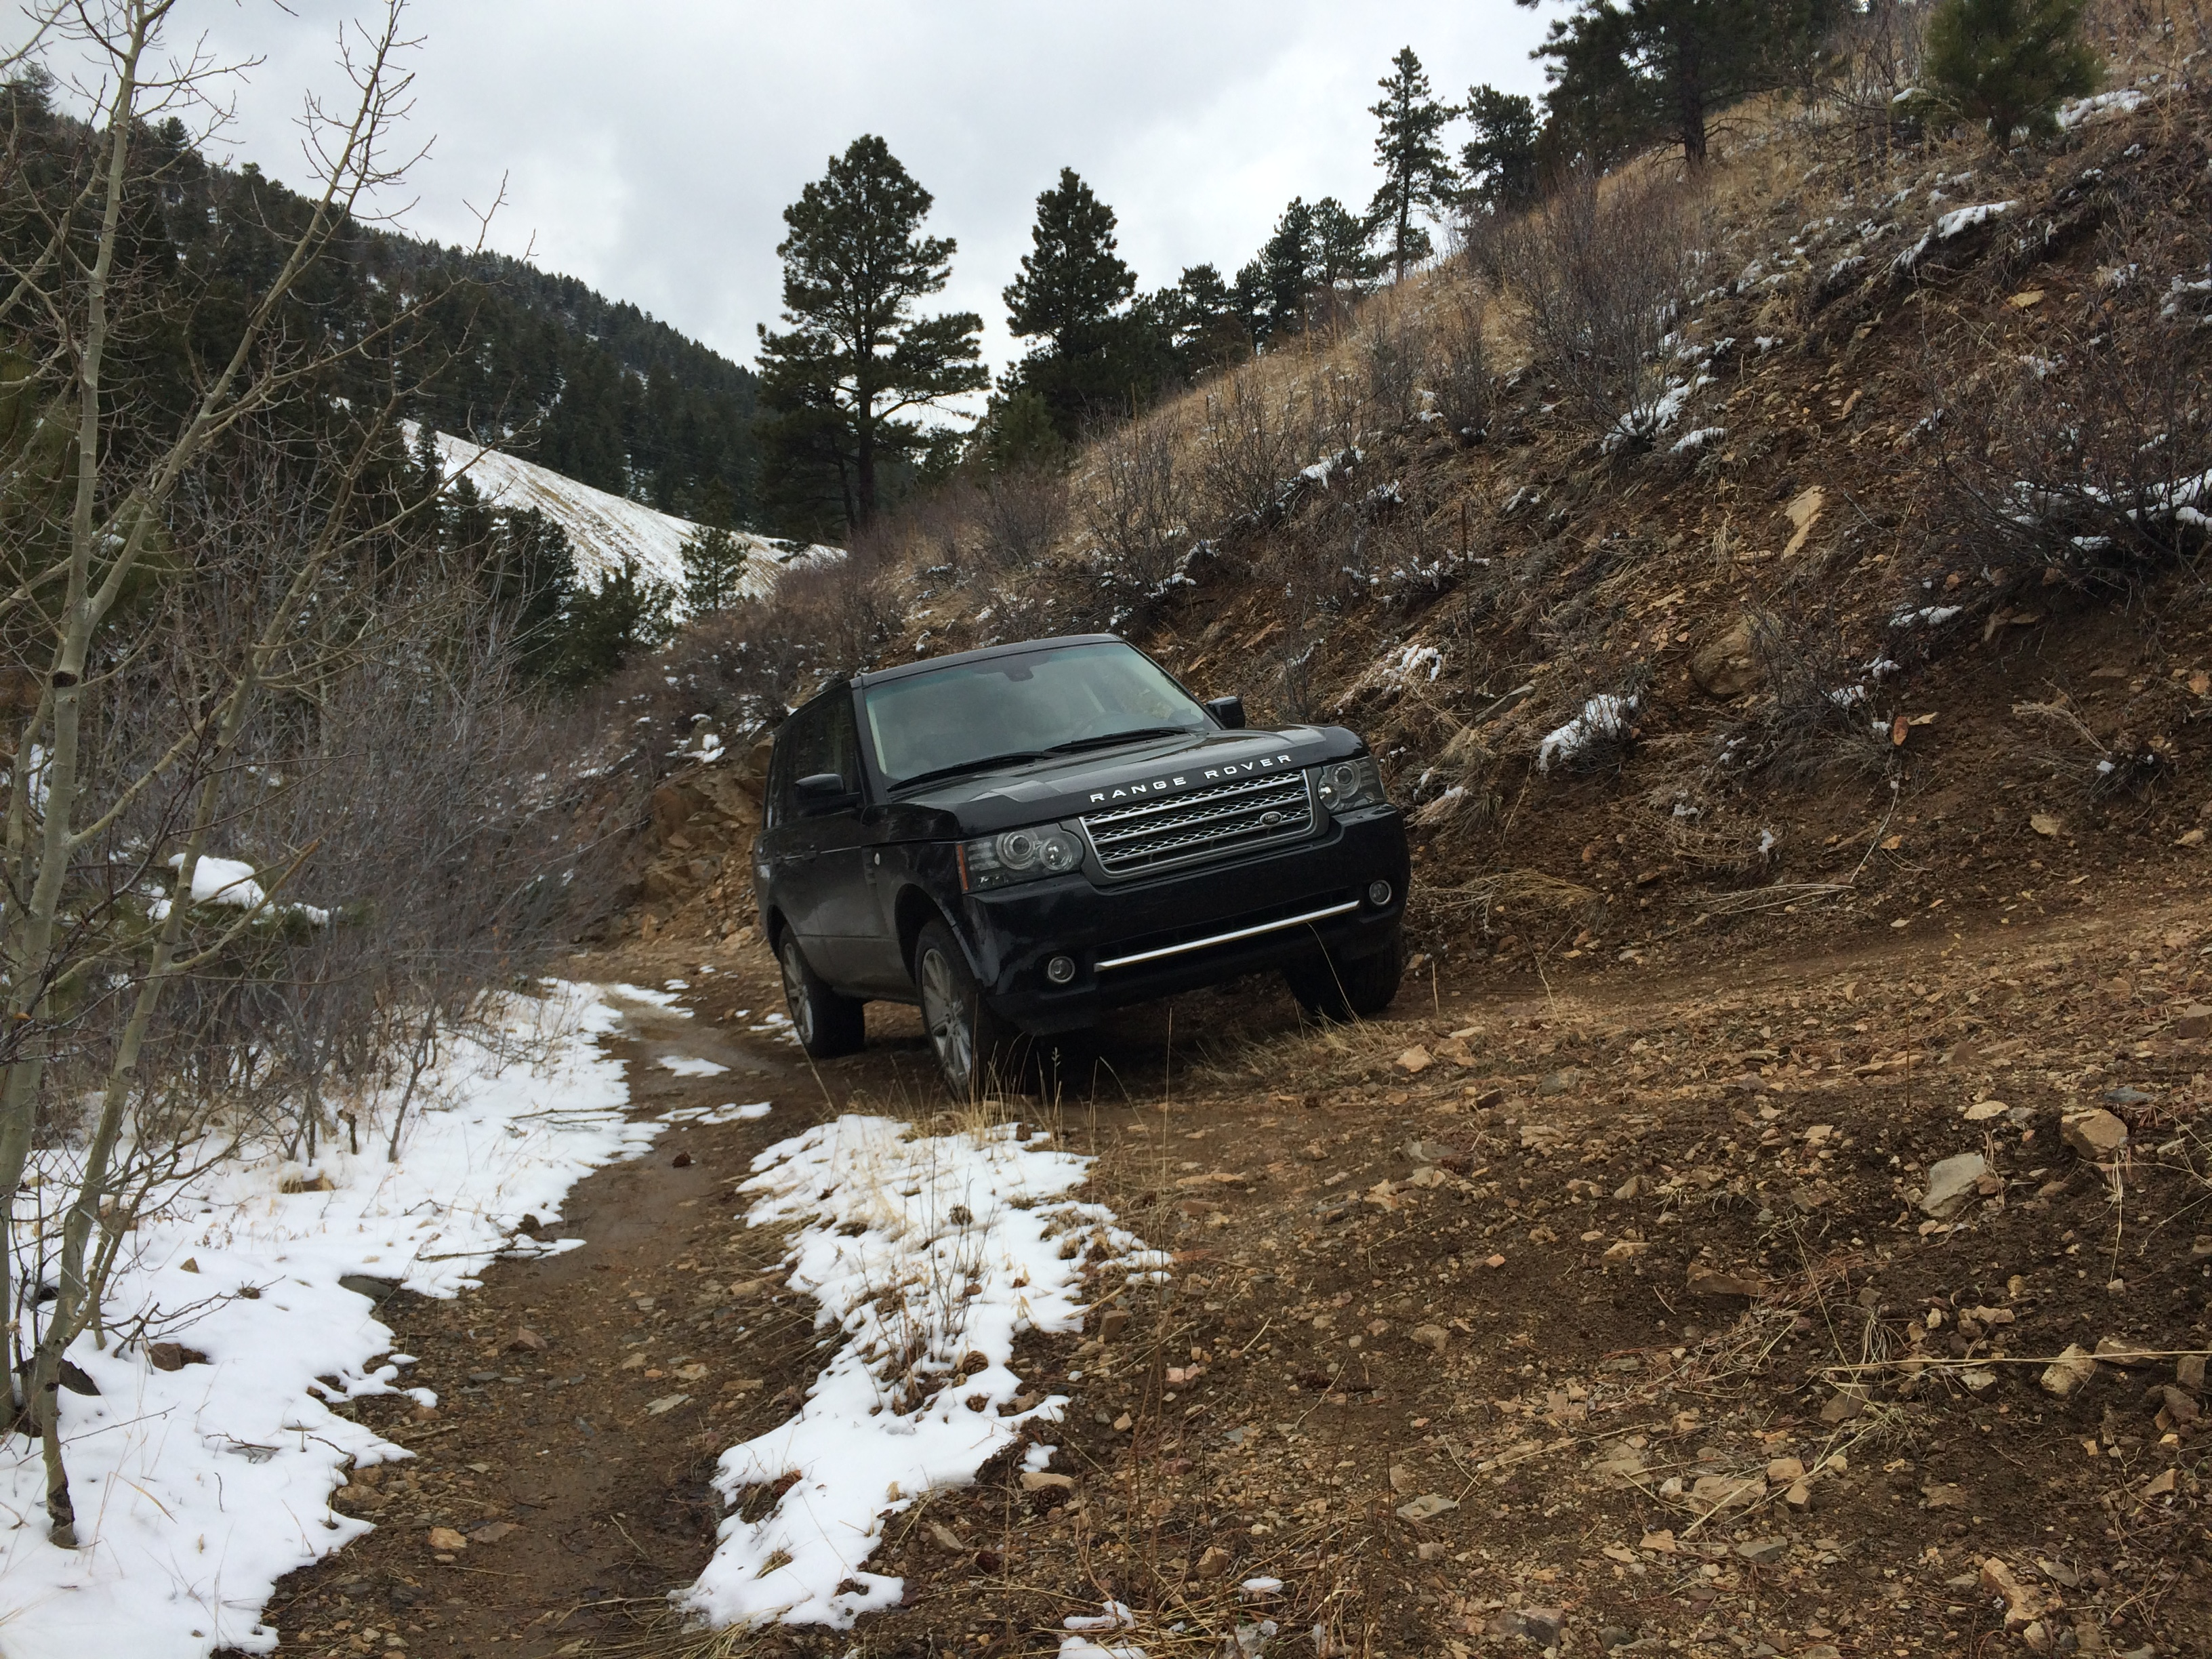 2011 Range Rover Supercharged off road in Boulder